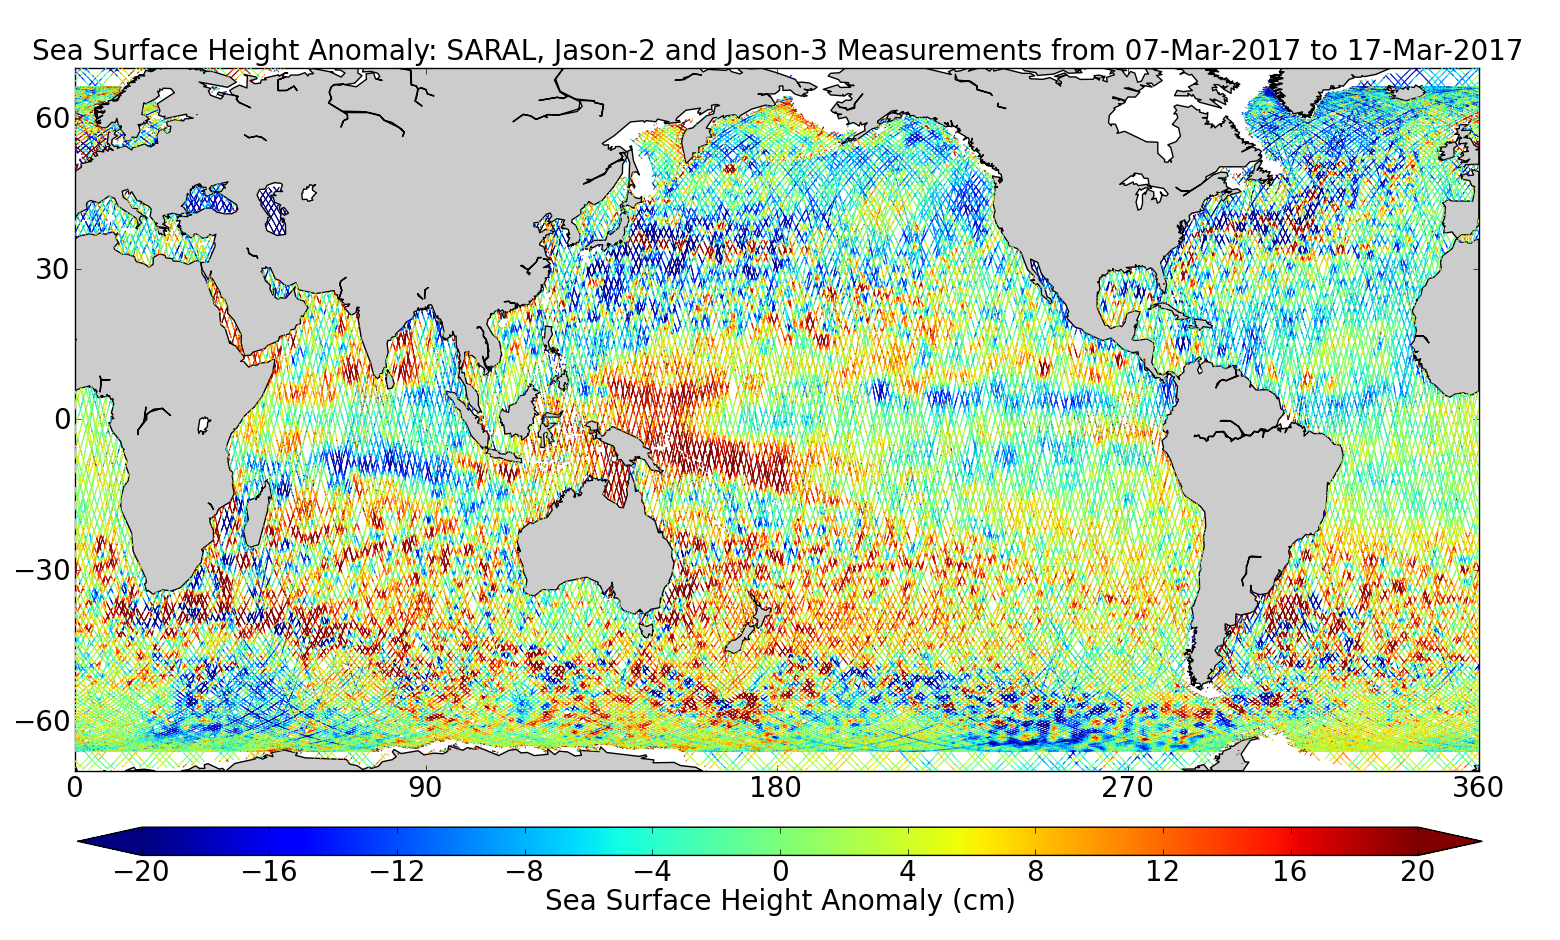 Sea Surface Height Anomaly: SARAL, Jason-2 and Jason-3 Measurements from 07-Mar-2017 to 17-Mar-2017